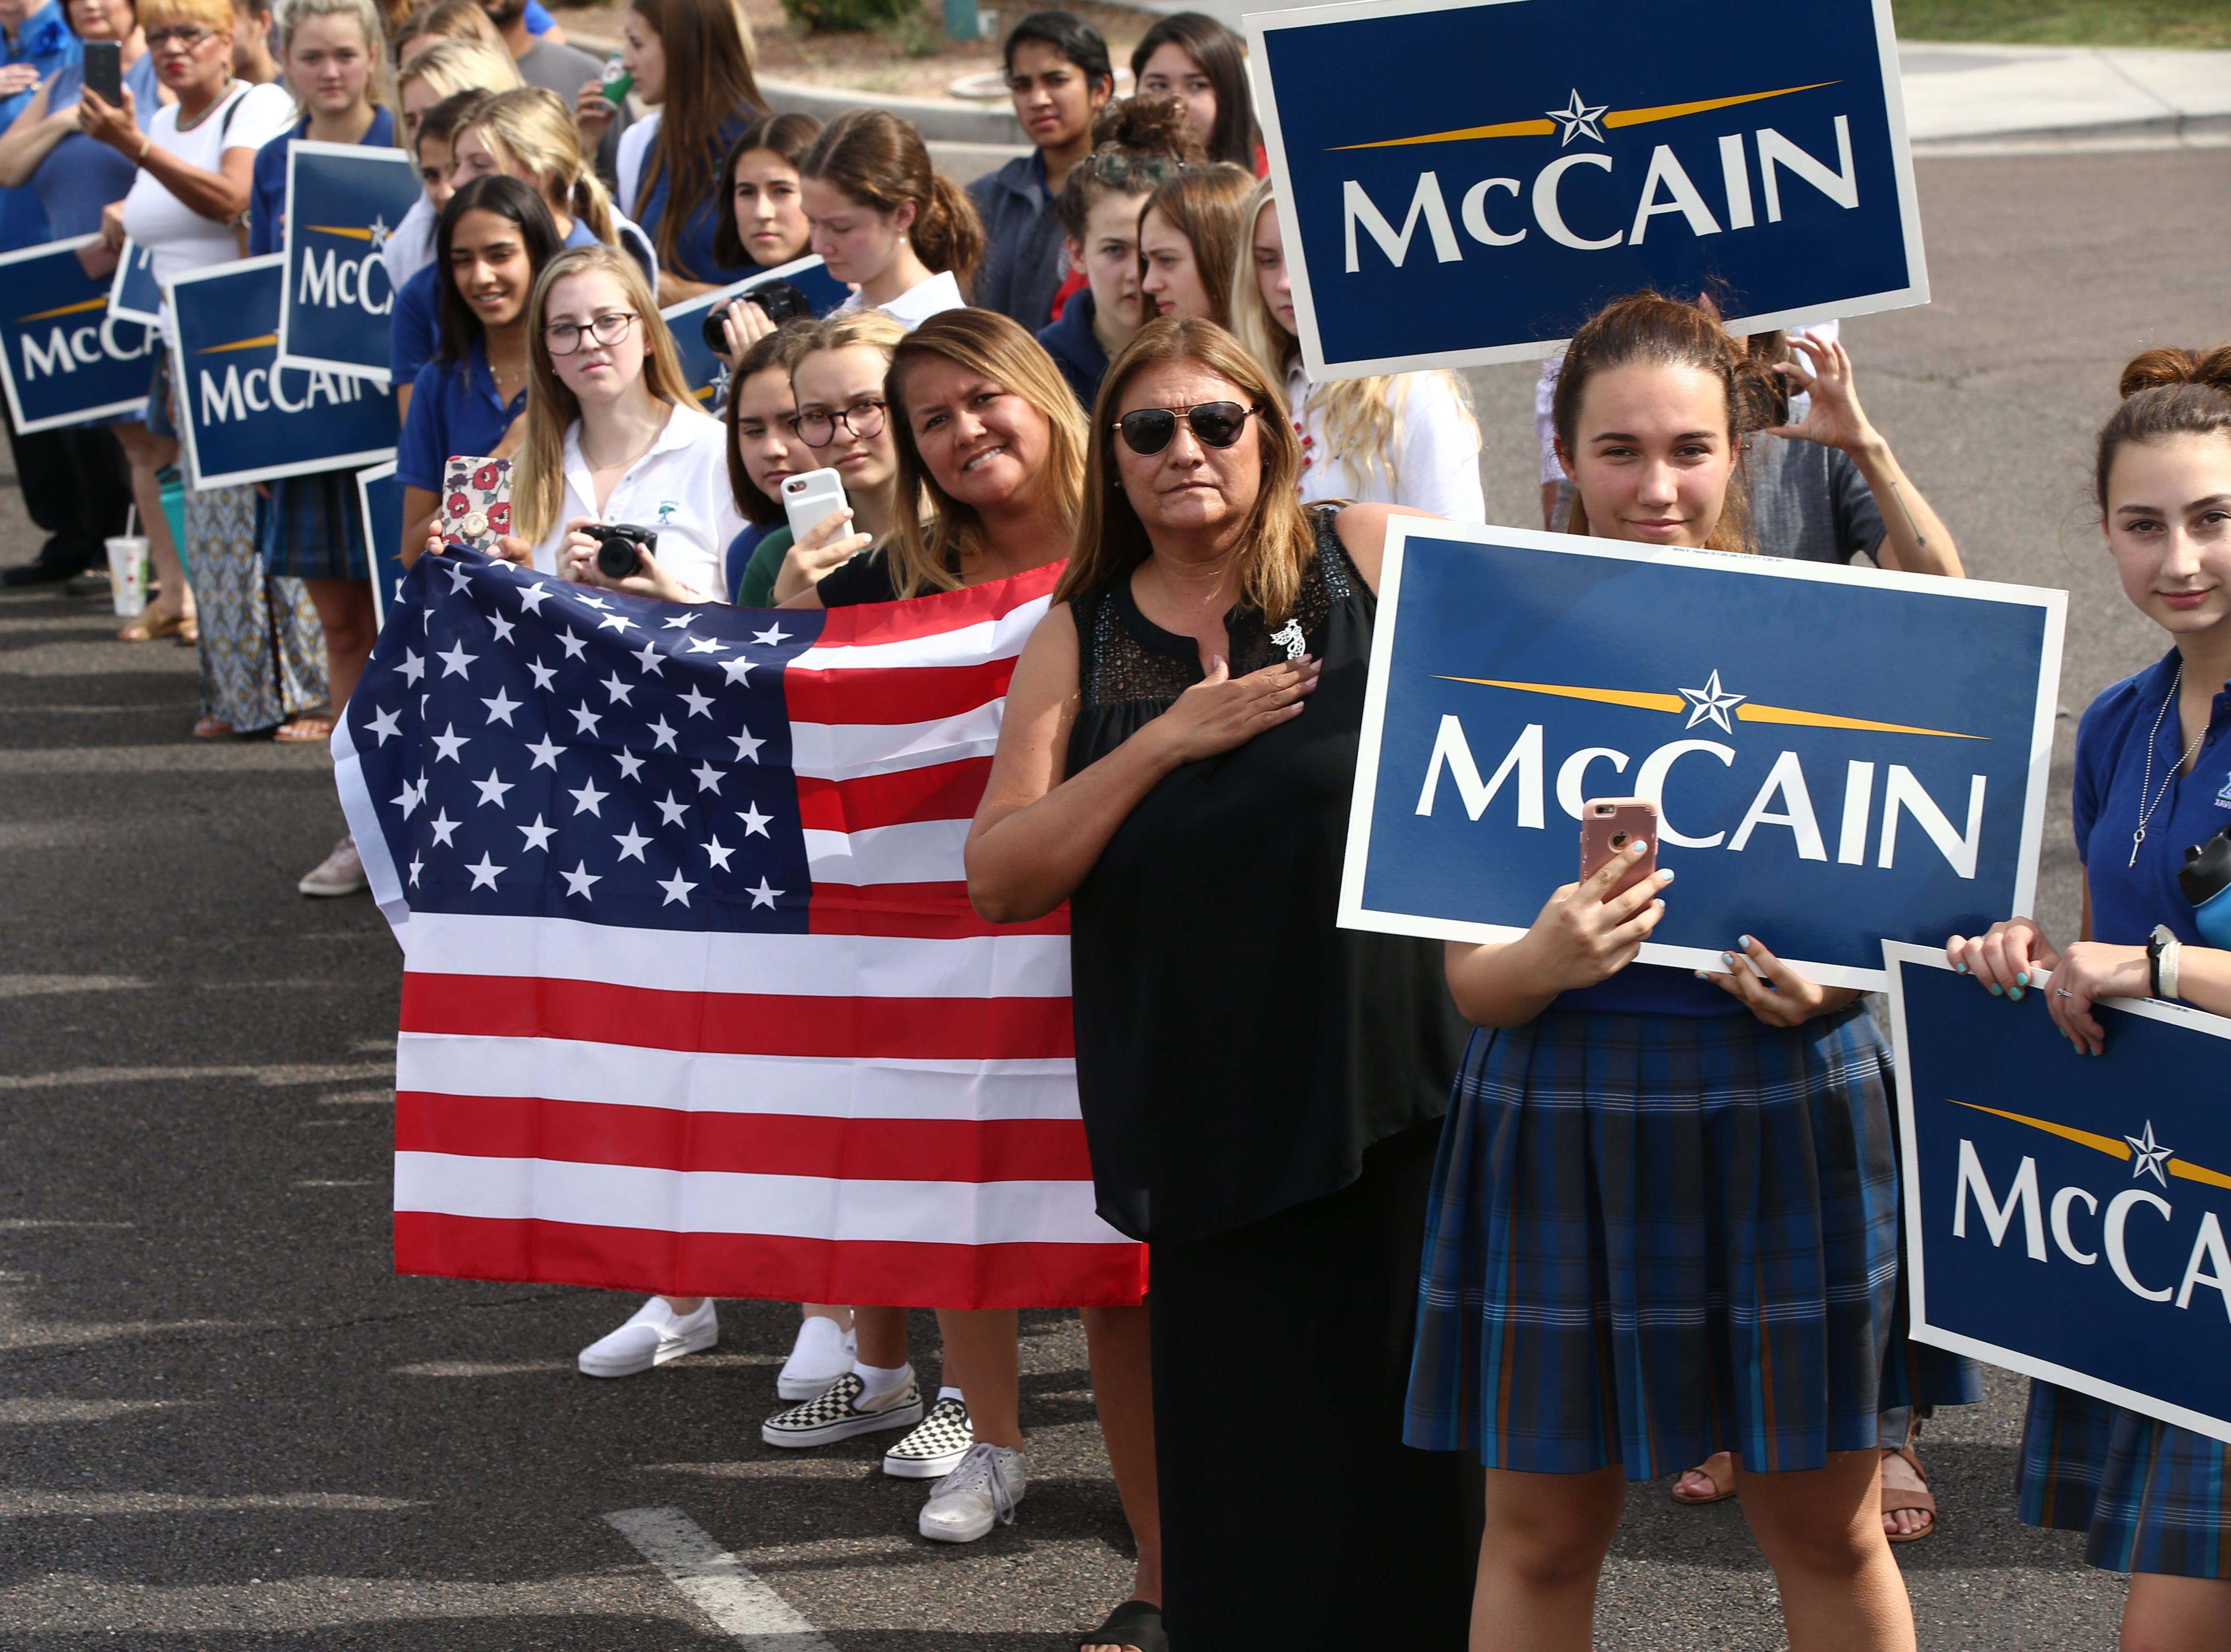 Thousands lined the streets to pay their final respects as the hearse of U.S. Senator John McCain traveled to his memorial service at North Phoenix Baptist Church on Aug. 30, 2018,in Phoenix.